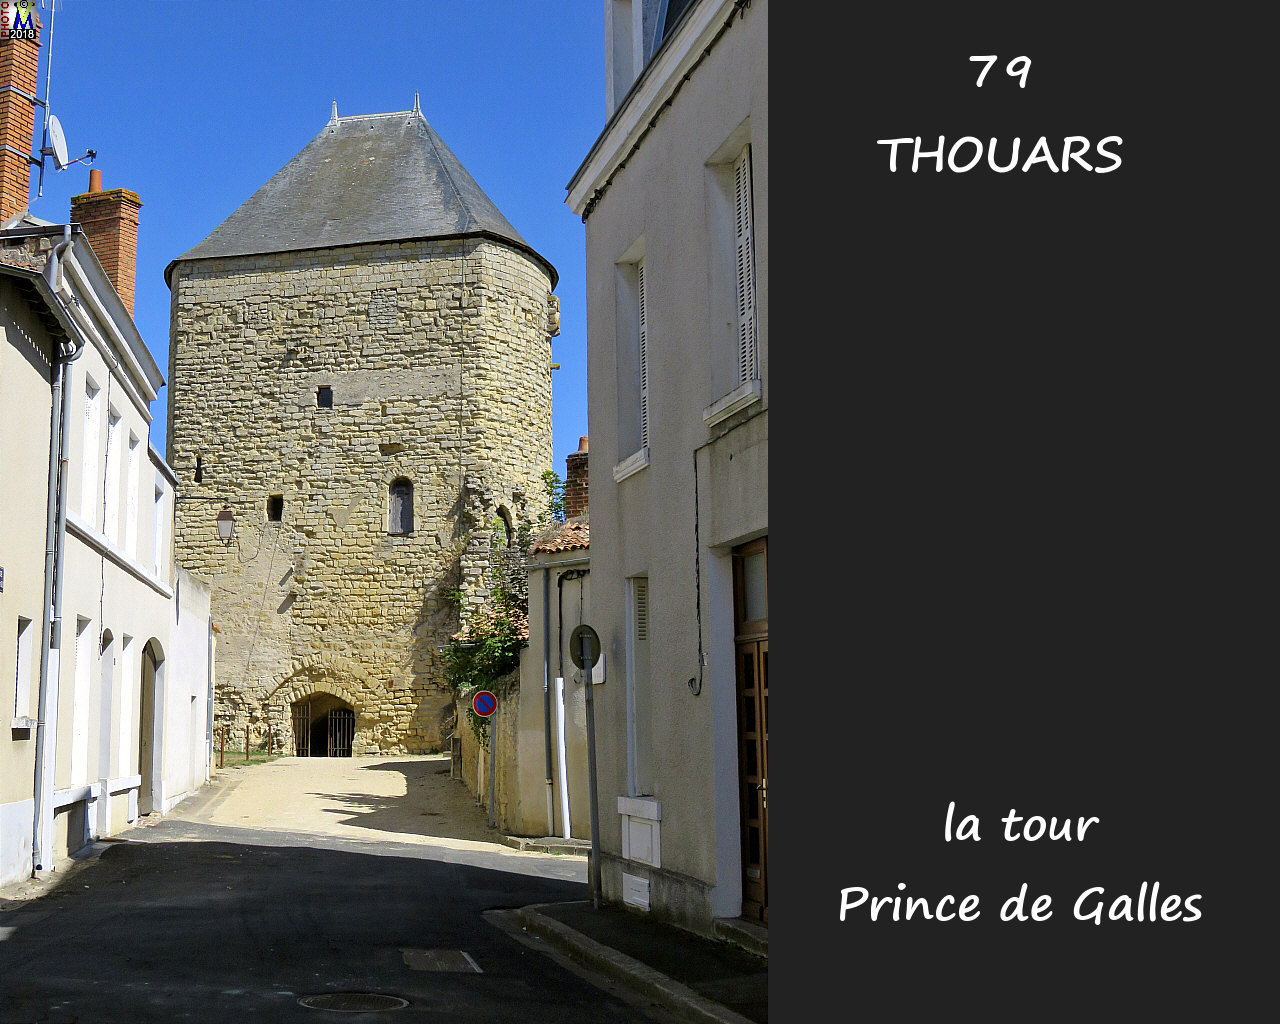 79THOUARS_TourPG_1006.jpg